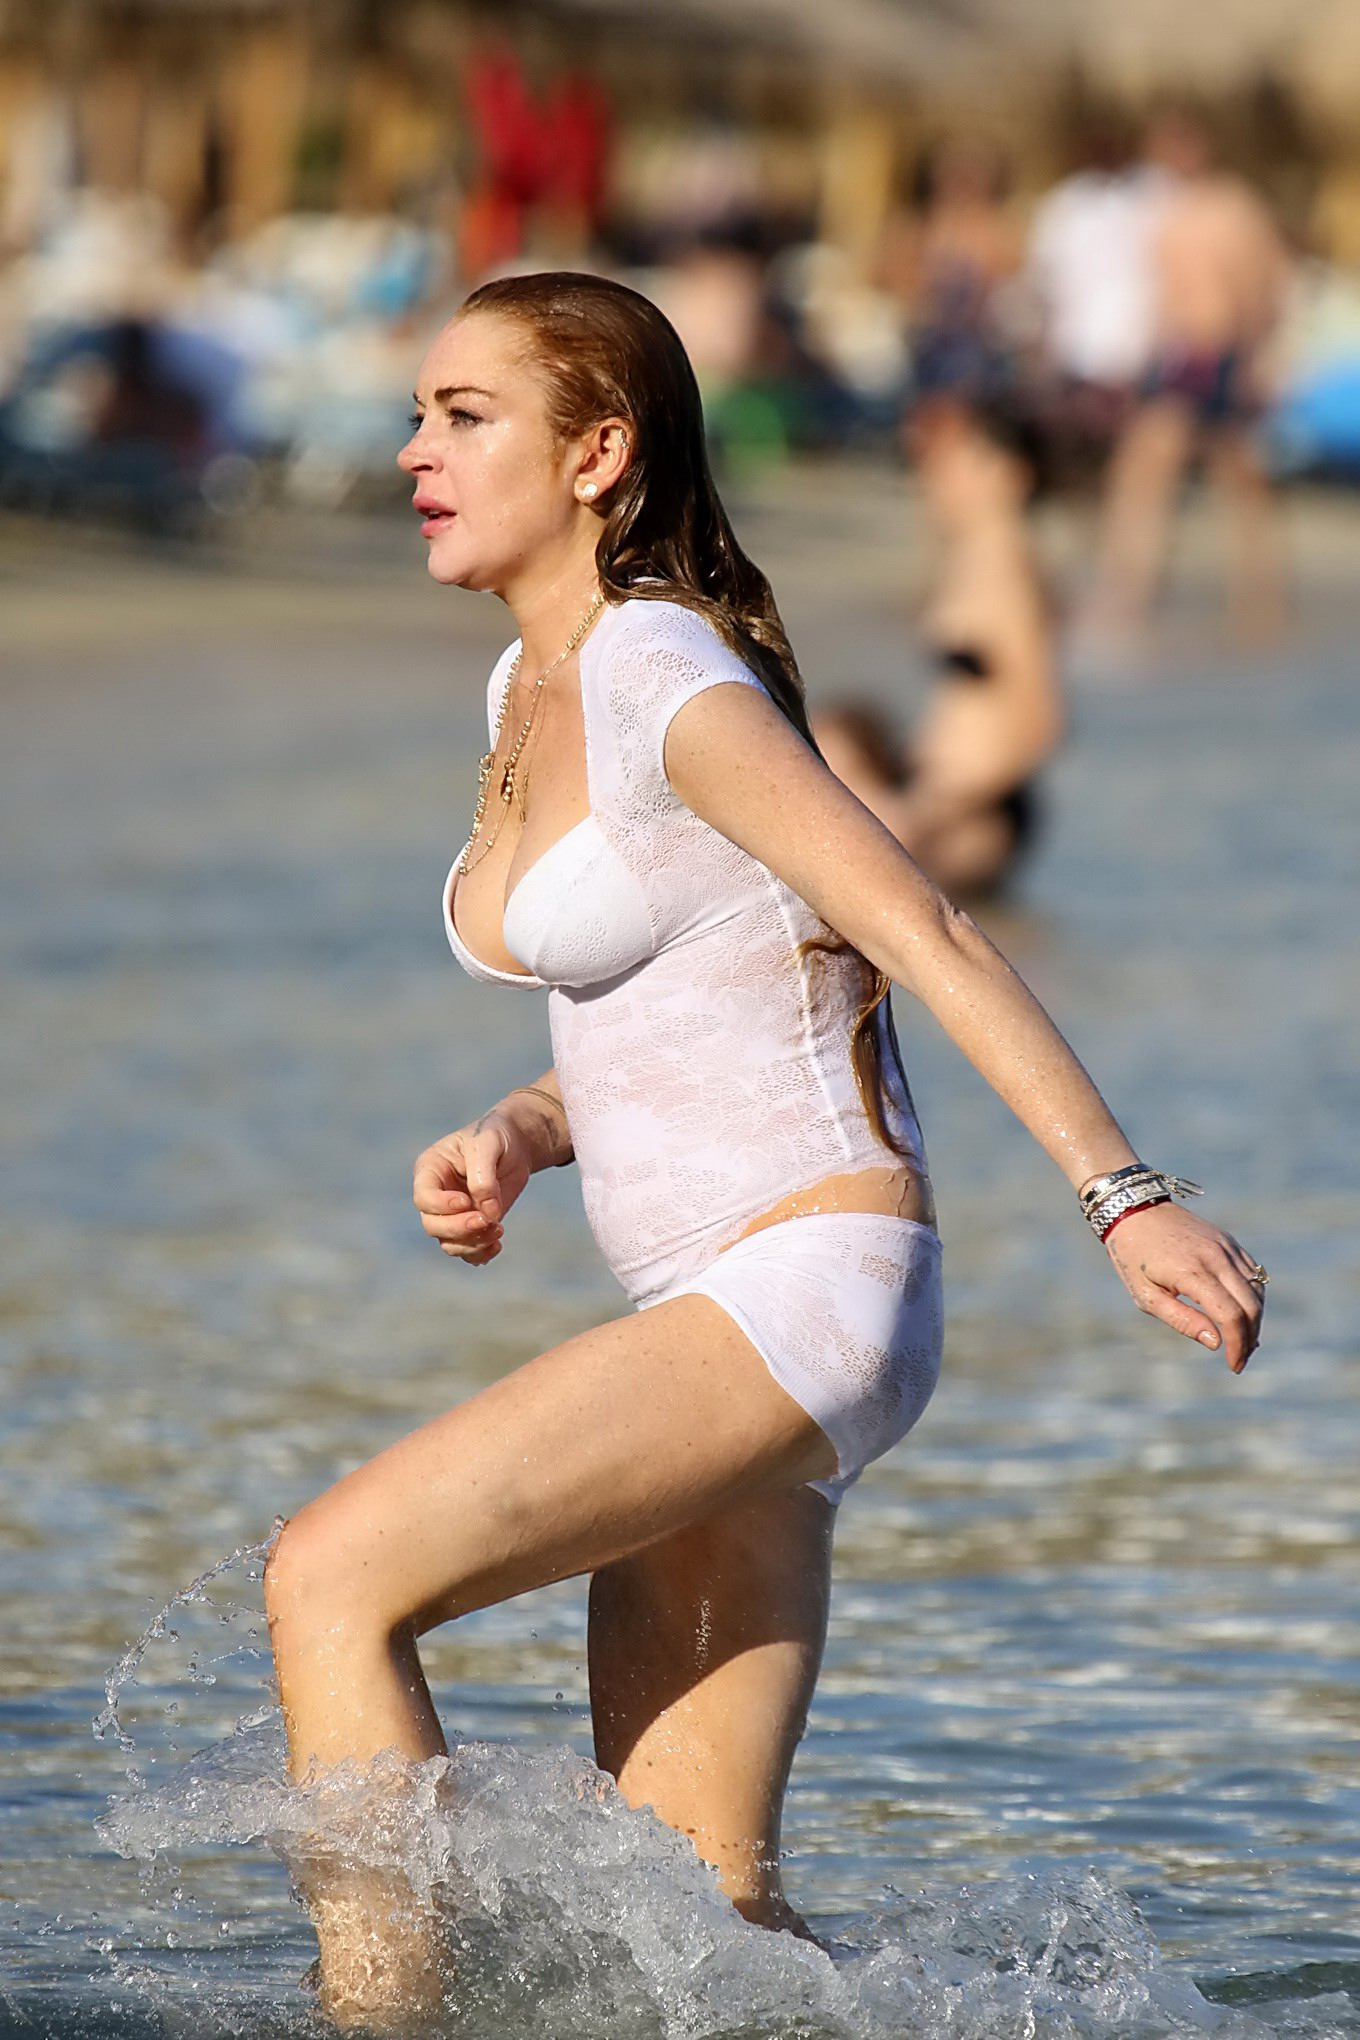 lindsay lohan busty wearing  arre white transparent swimsuit at the